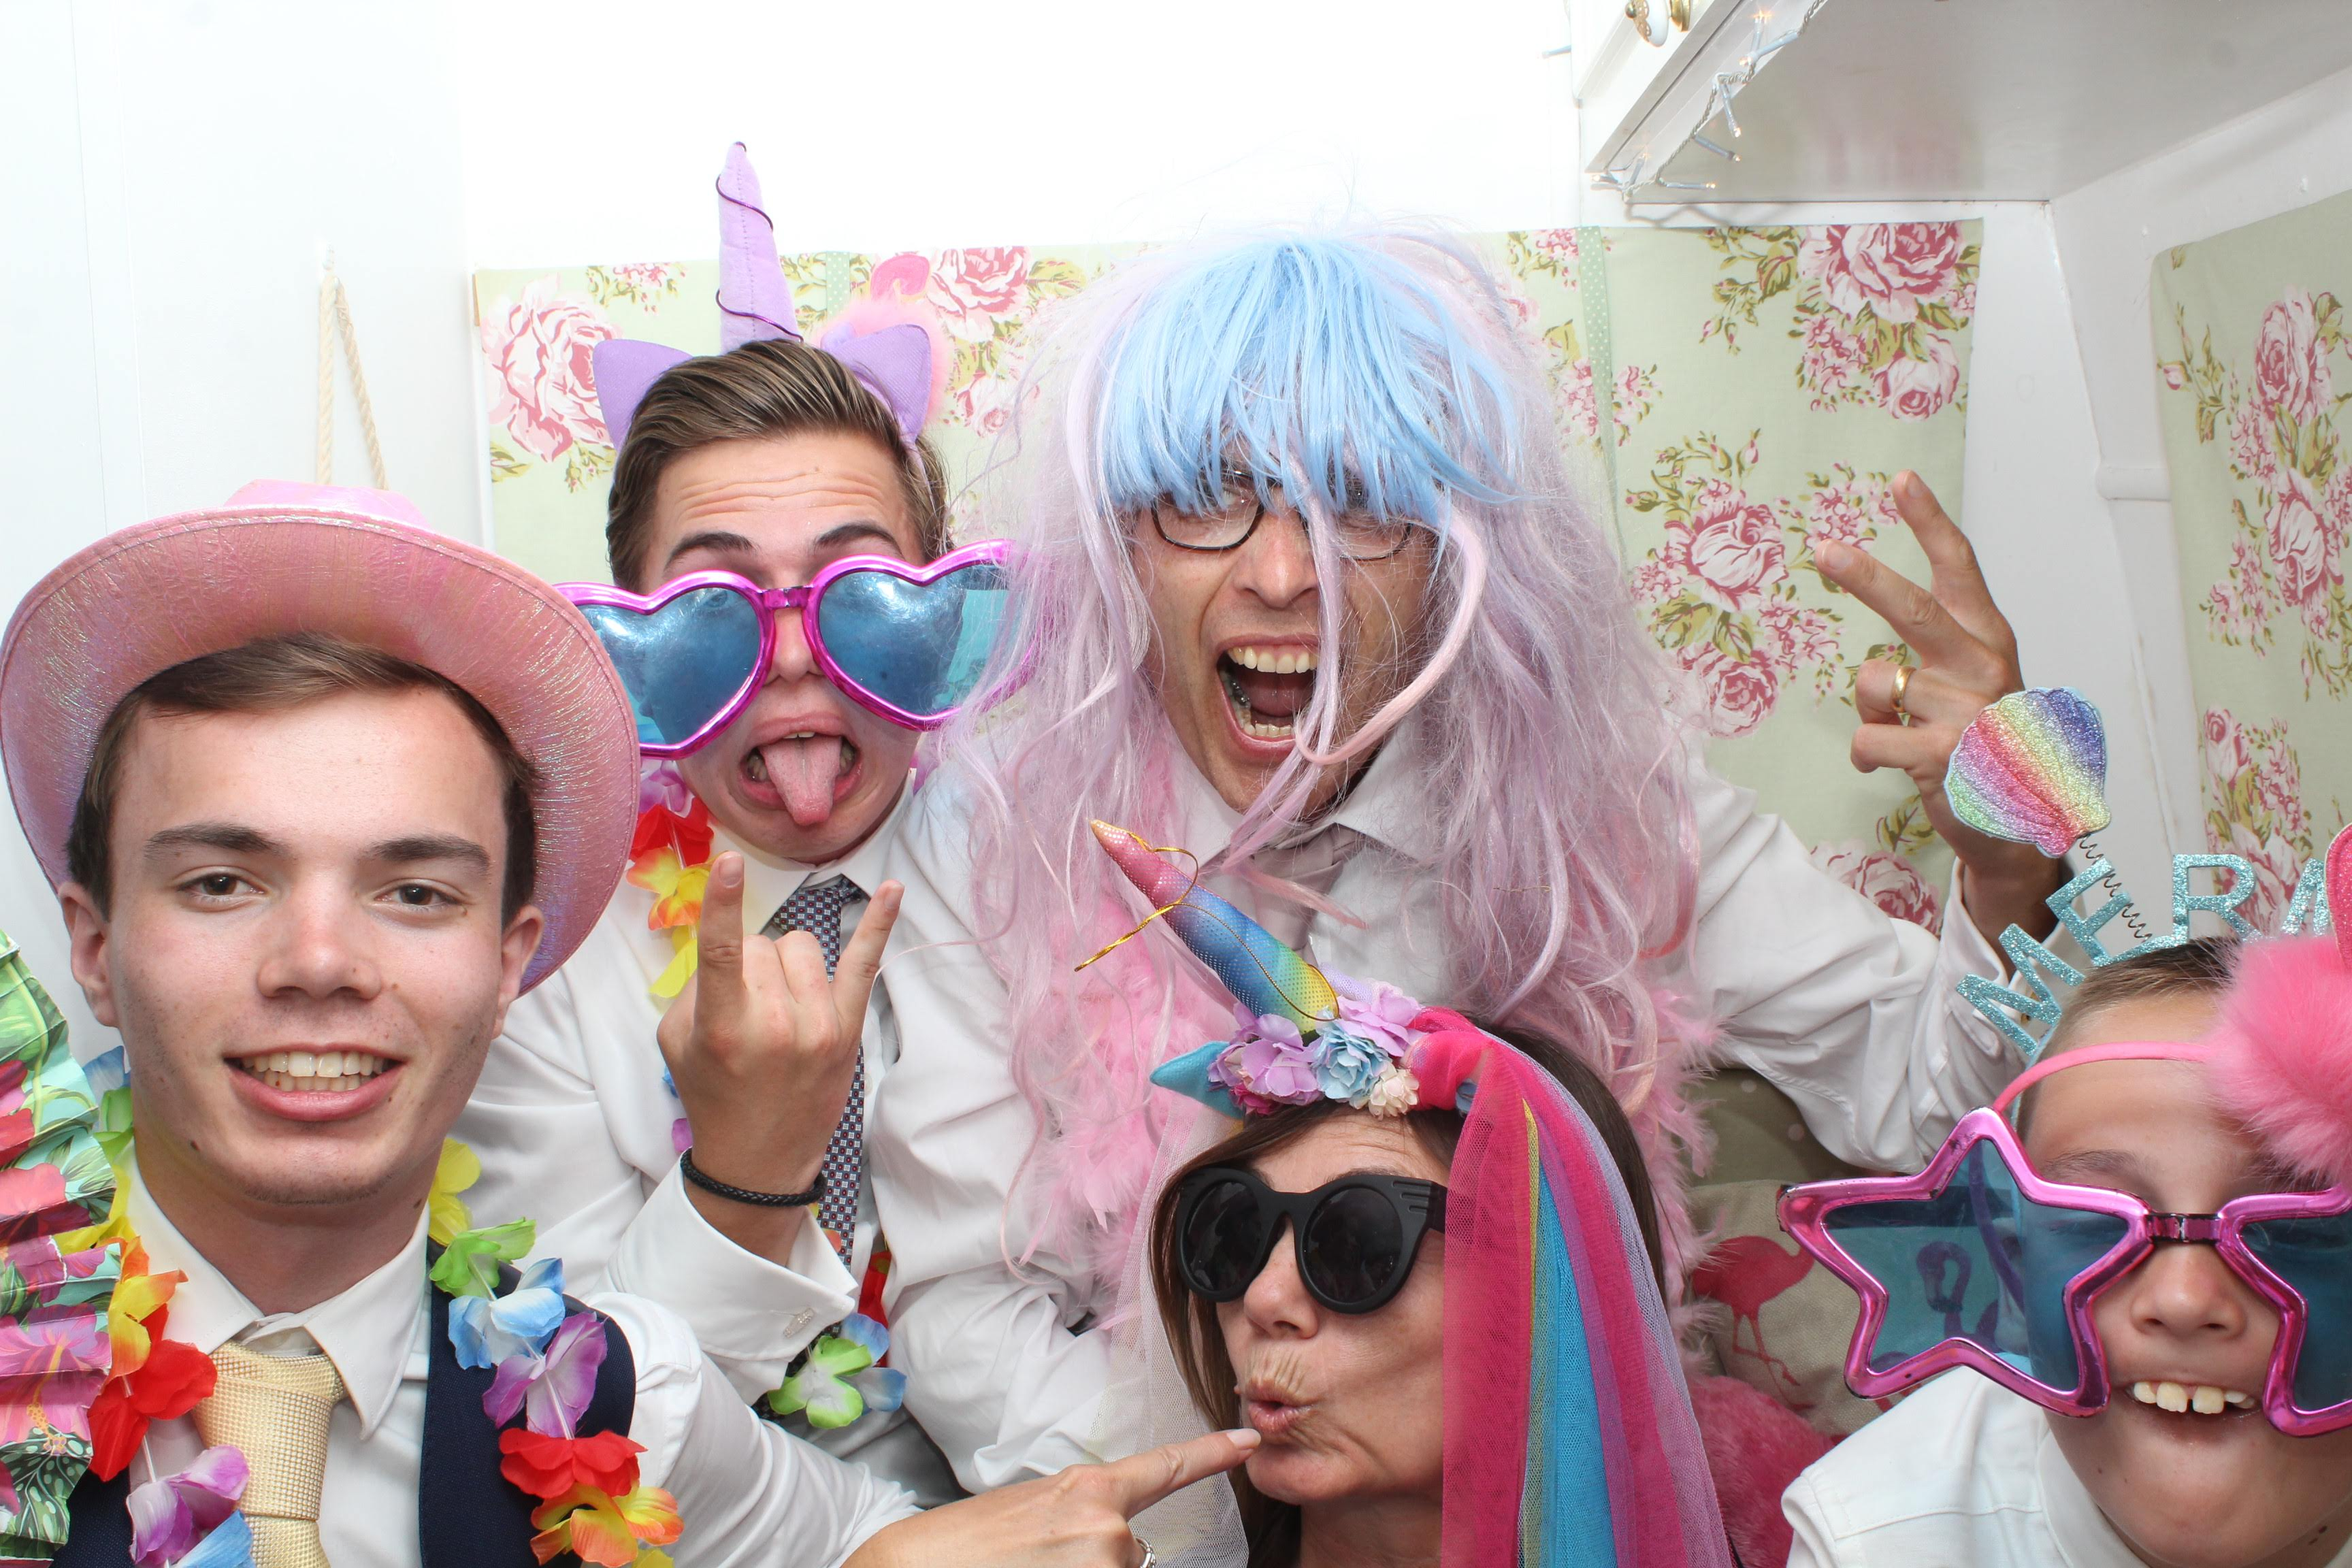 Picture from Coggeshall Vineyard Wedding Photobooth